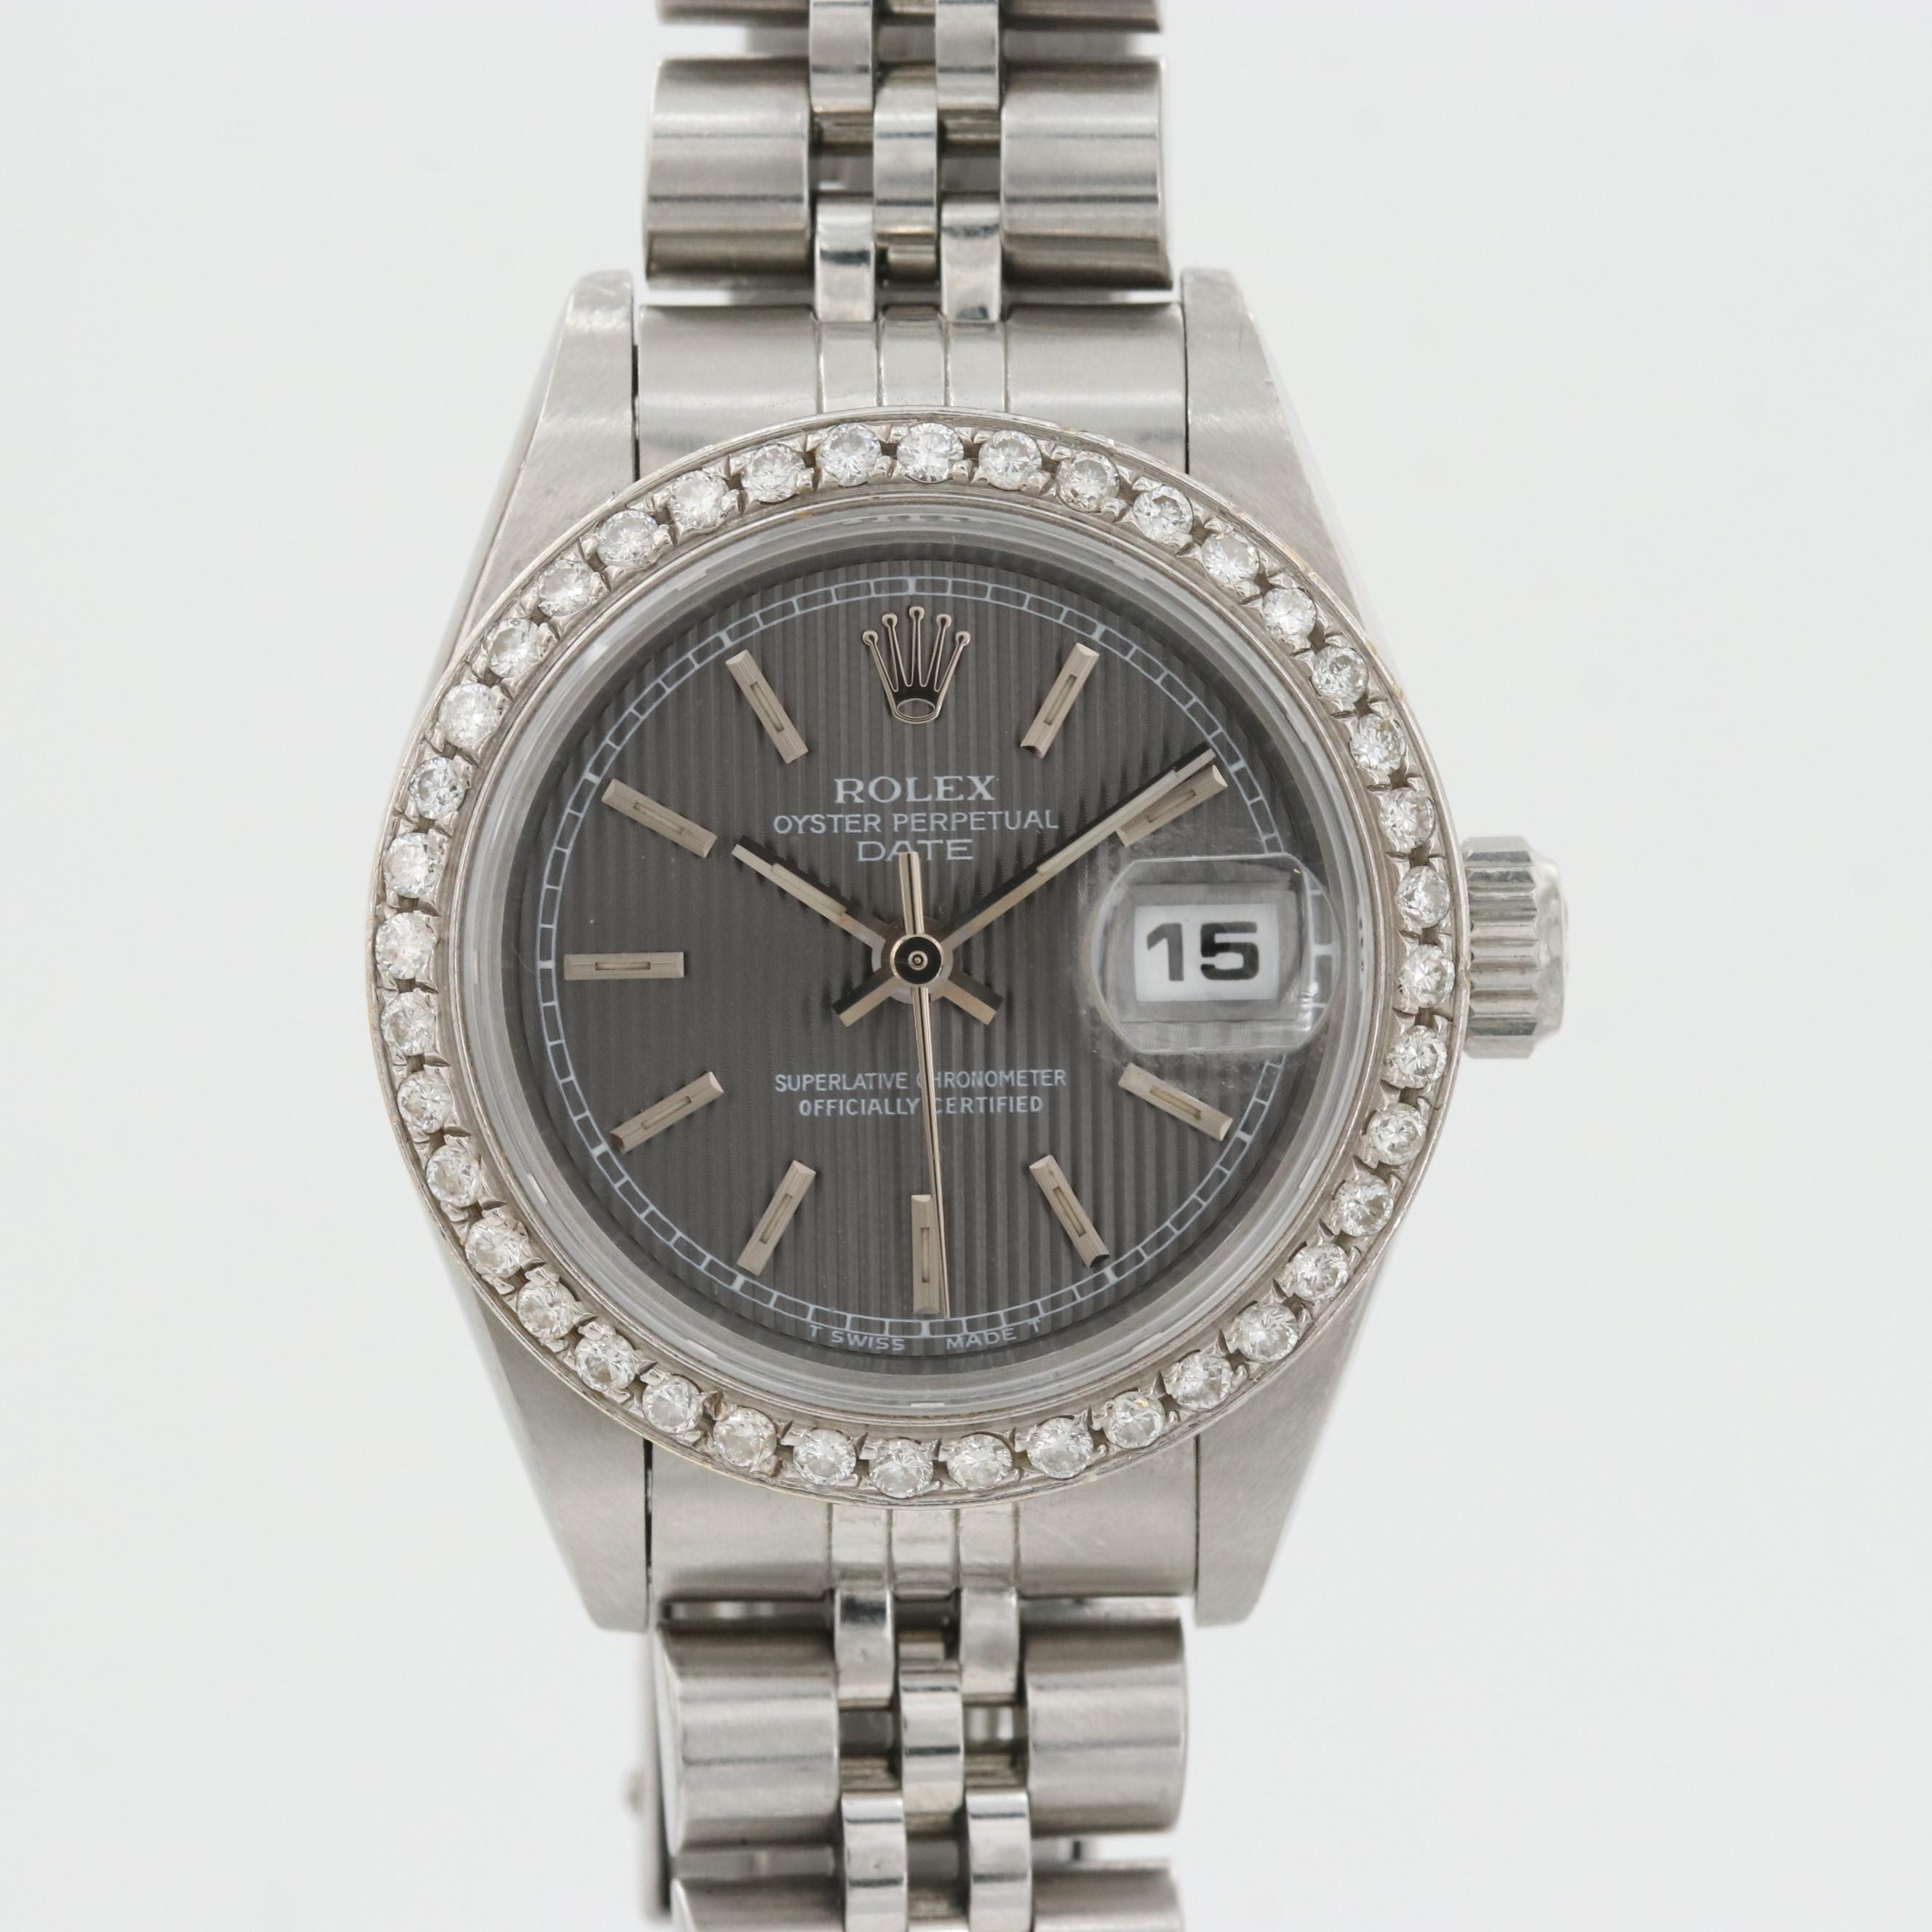 Rolex Stainless Steel and 18K White Gold Wristwatch With Diamond Bezel, 1995